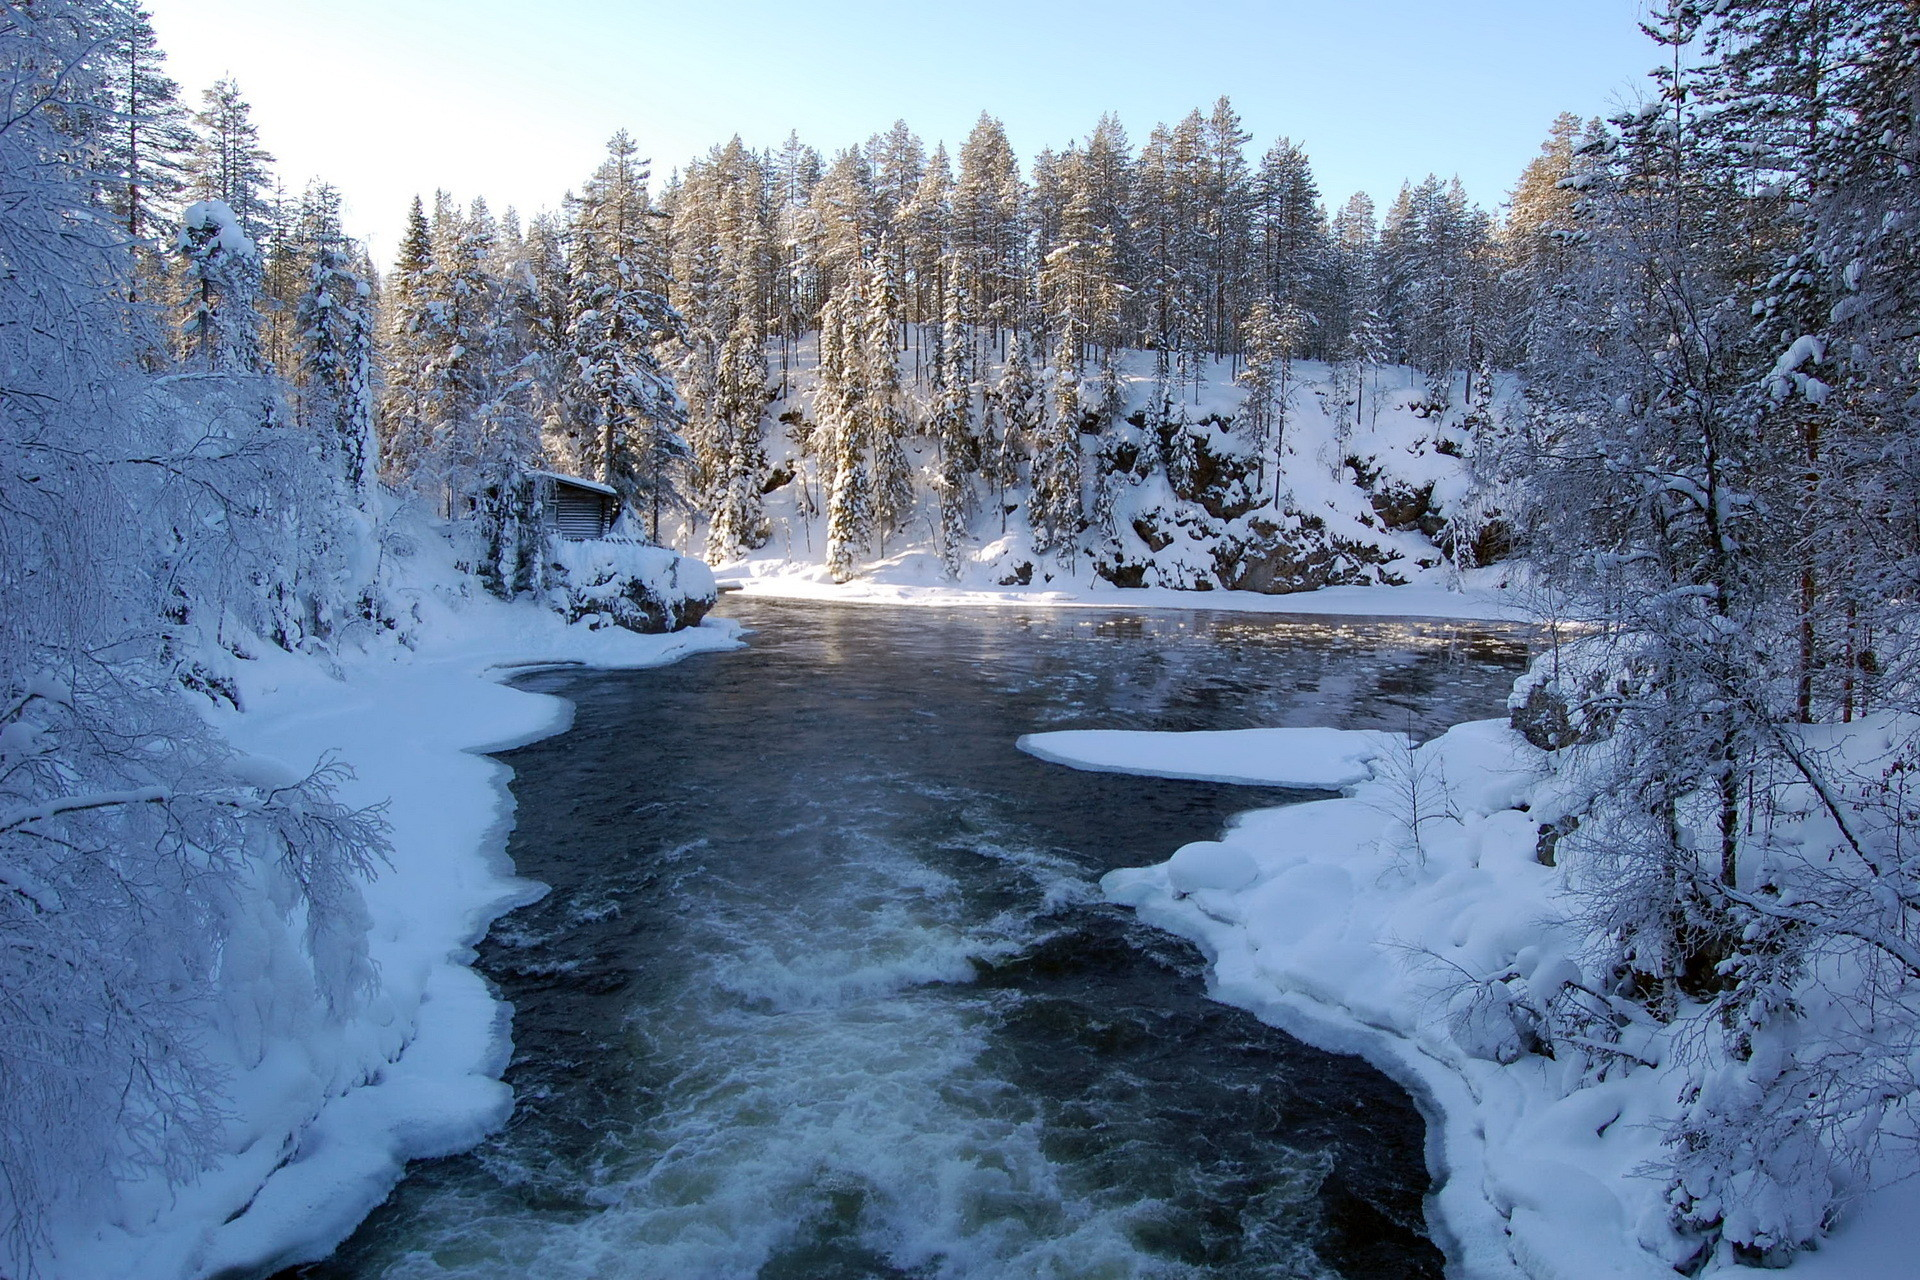 landscape landscapes nature winter seasons snow forest scenic scenery